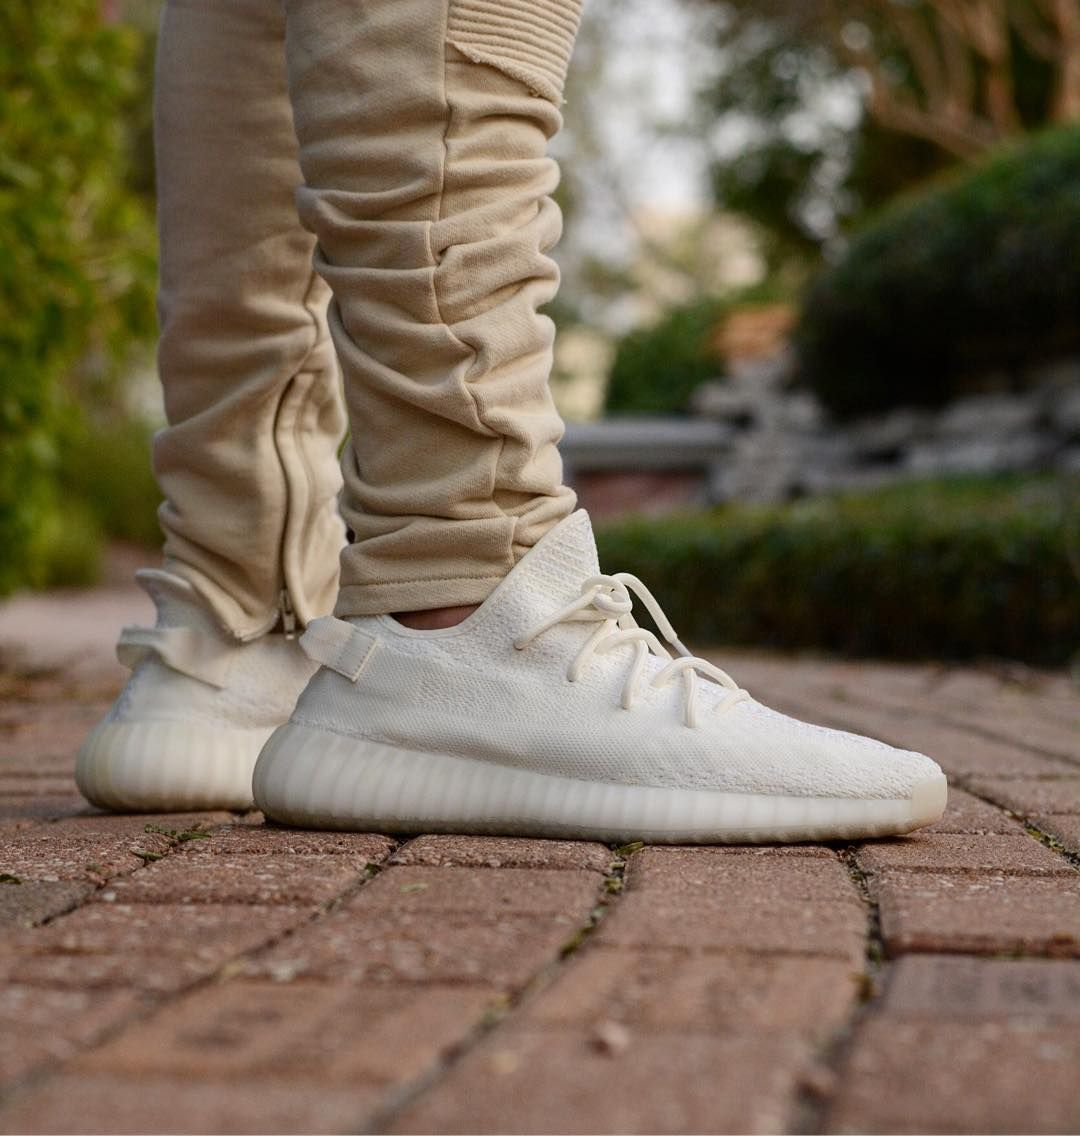 """adidas yeezy boost 350 v2 """"cream""""  yeezy outfit sneakers"""